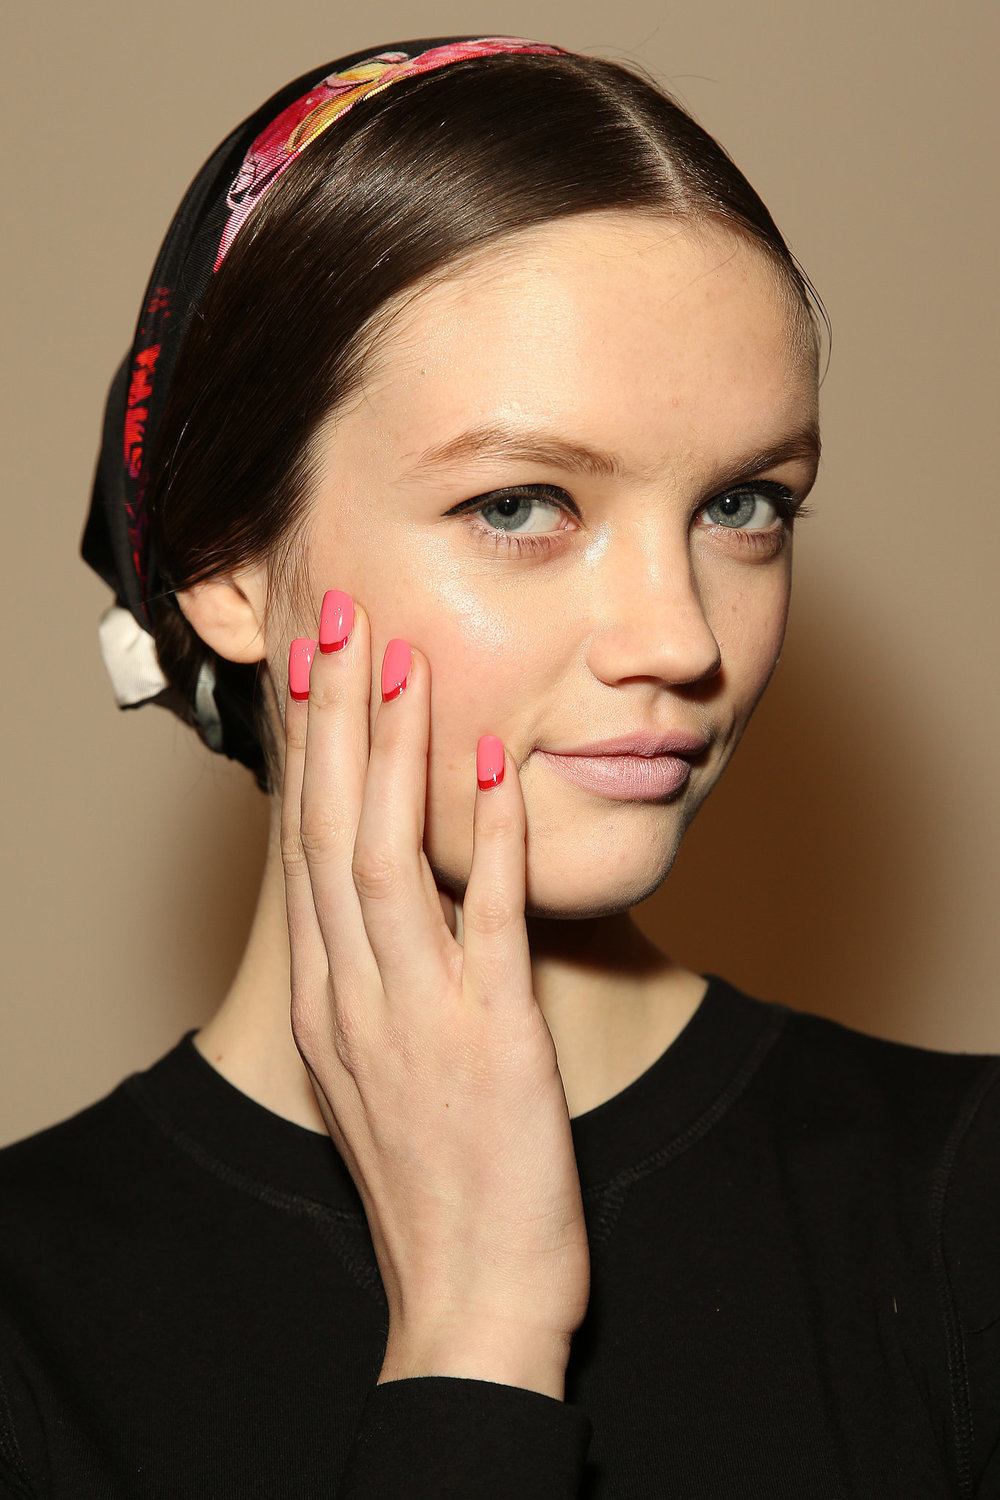 Honor Fall 2014: Apply two coats of Deborah Lippman It's Raining Men, a classic red. Then add Deborah Lippman in Break 4 Love so that only a sliver of red showed. Honor Fall 2014: Para este look se aplican dos capas de Deborah Lippman en Is Raining Men, un rojo clásico, seguido de Deborah Lippman en Break 4 Love.